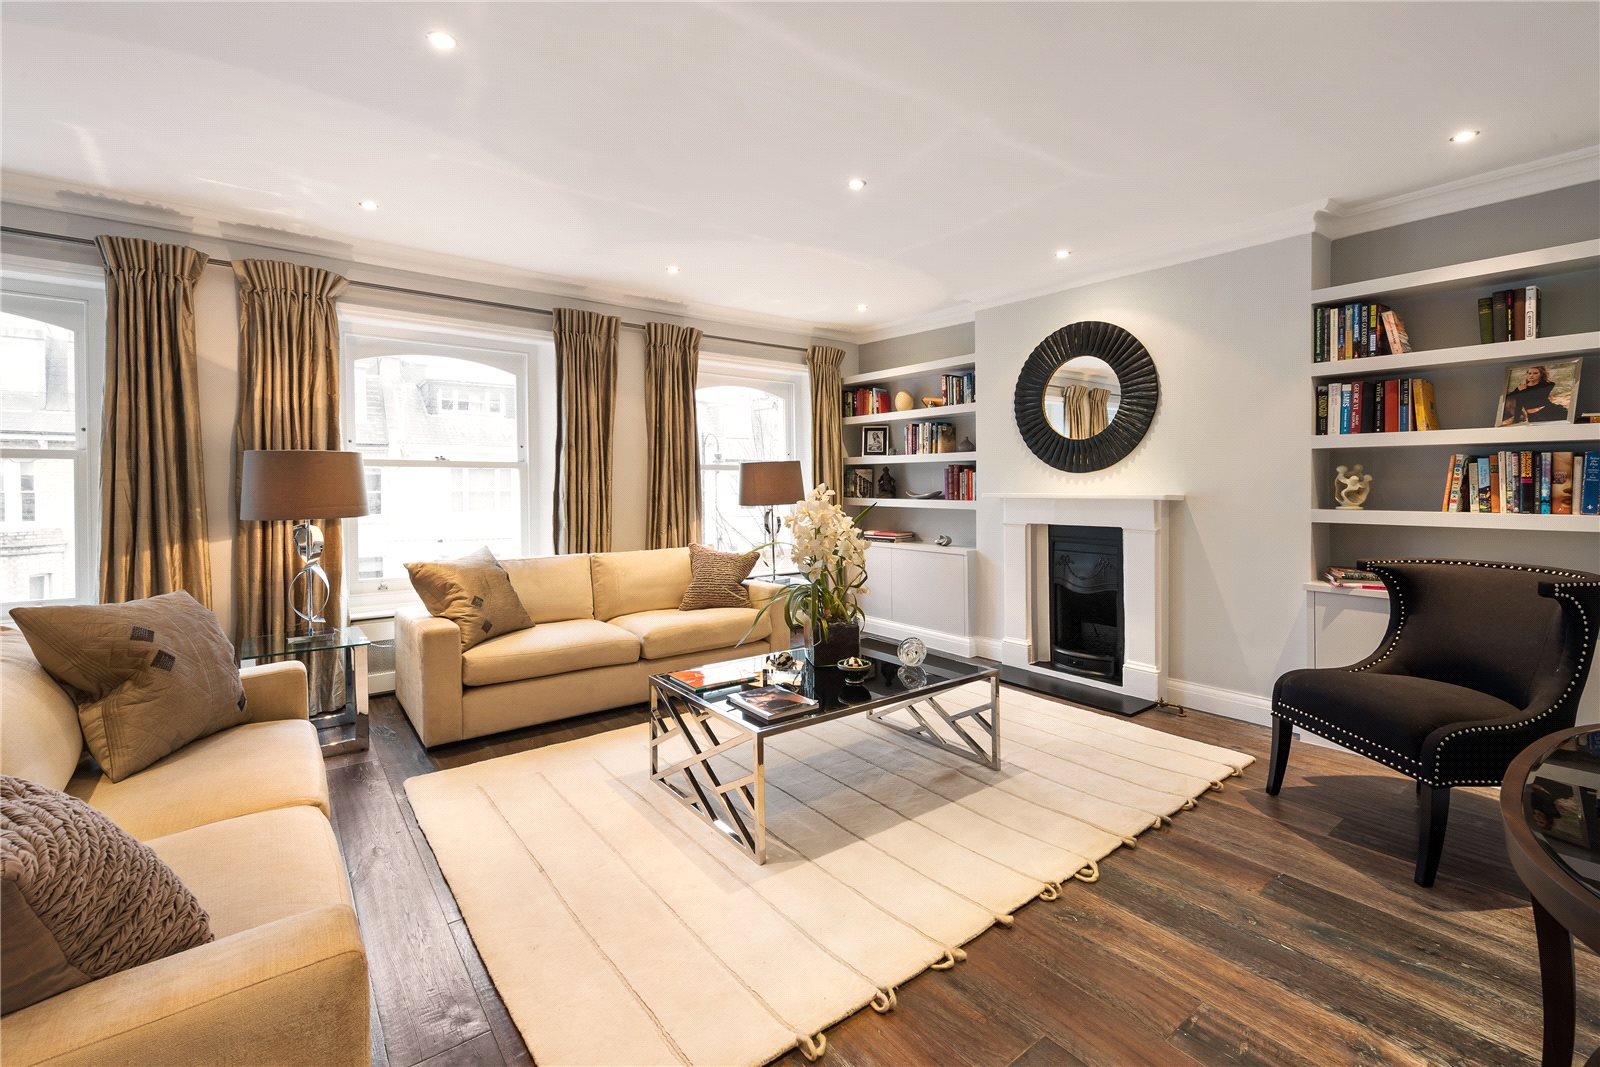 Apartments / Residences for Sale at Beaufort Street, Chelsea, London, SW3 Chelsea, London, England